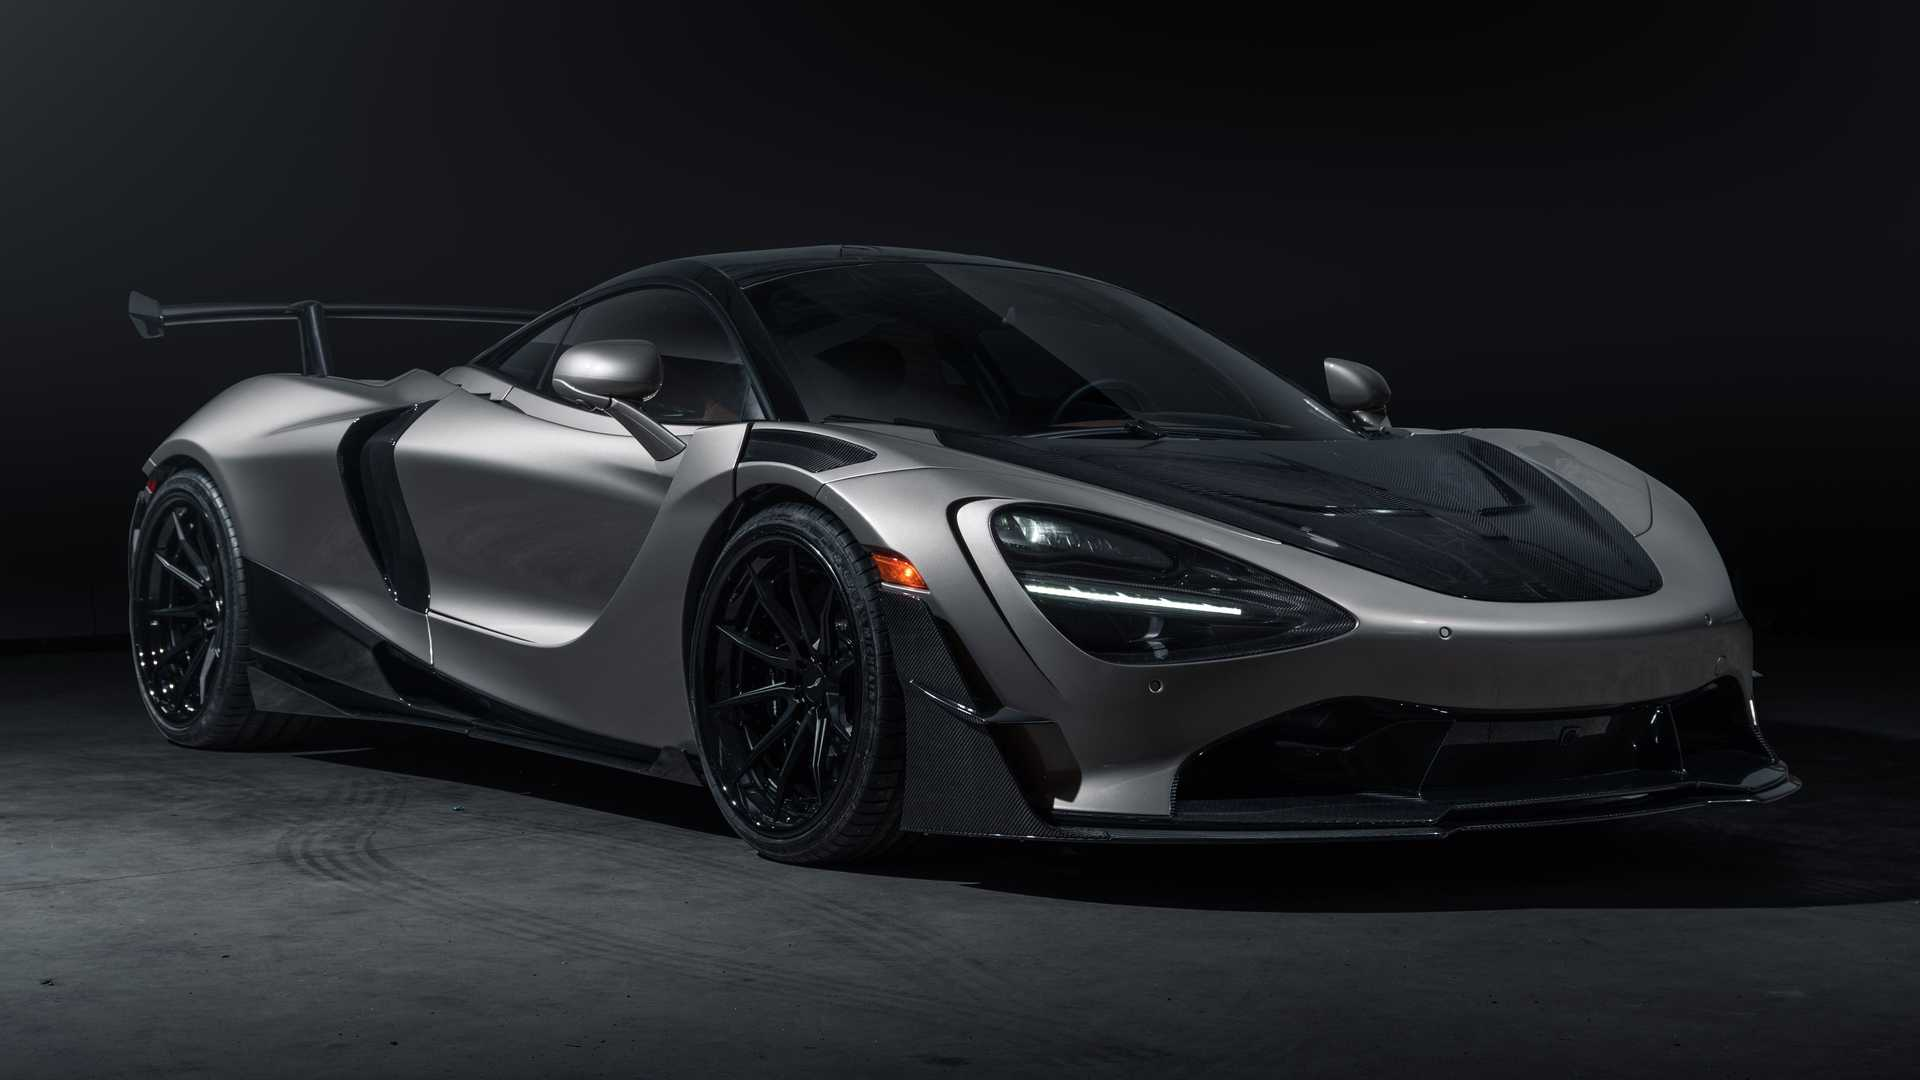 The recently born luxury vehicle customizer SWAE has unveiled its first project: the SWAE 720S, which uses McLaren 720S underpinnings for a rather compelling effect.